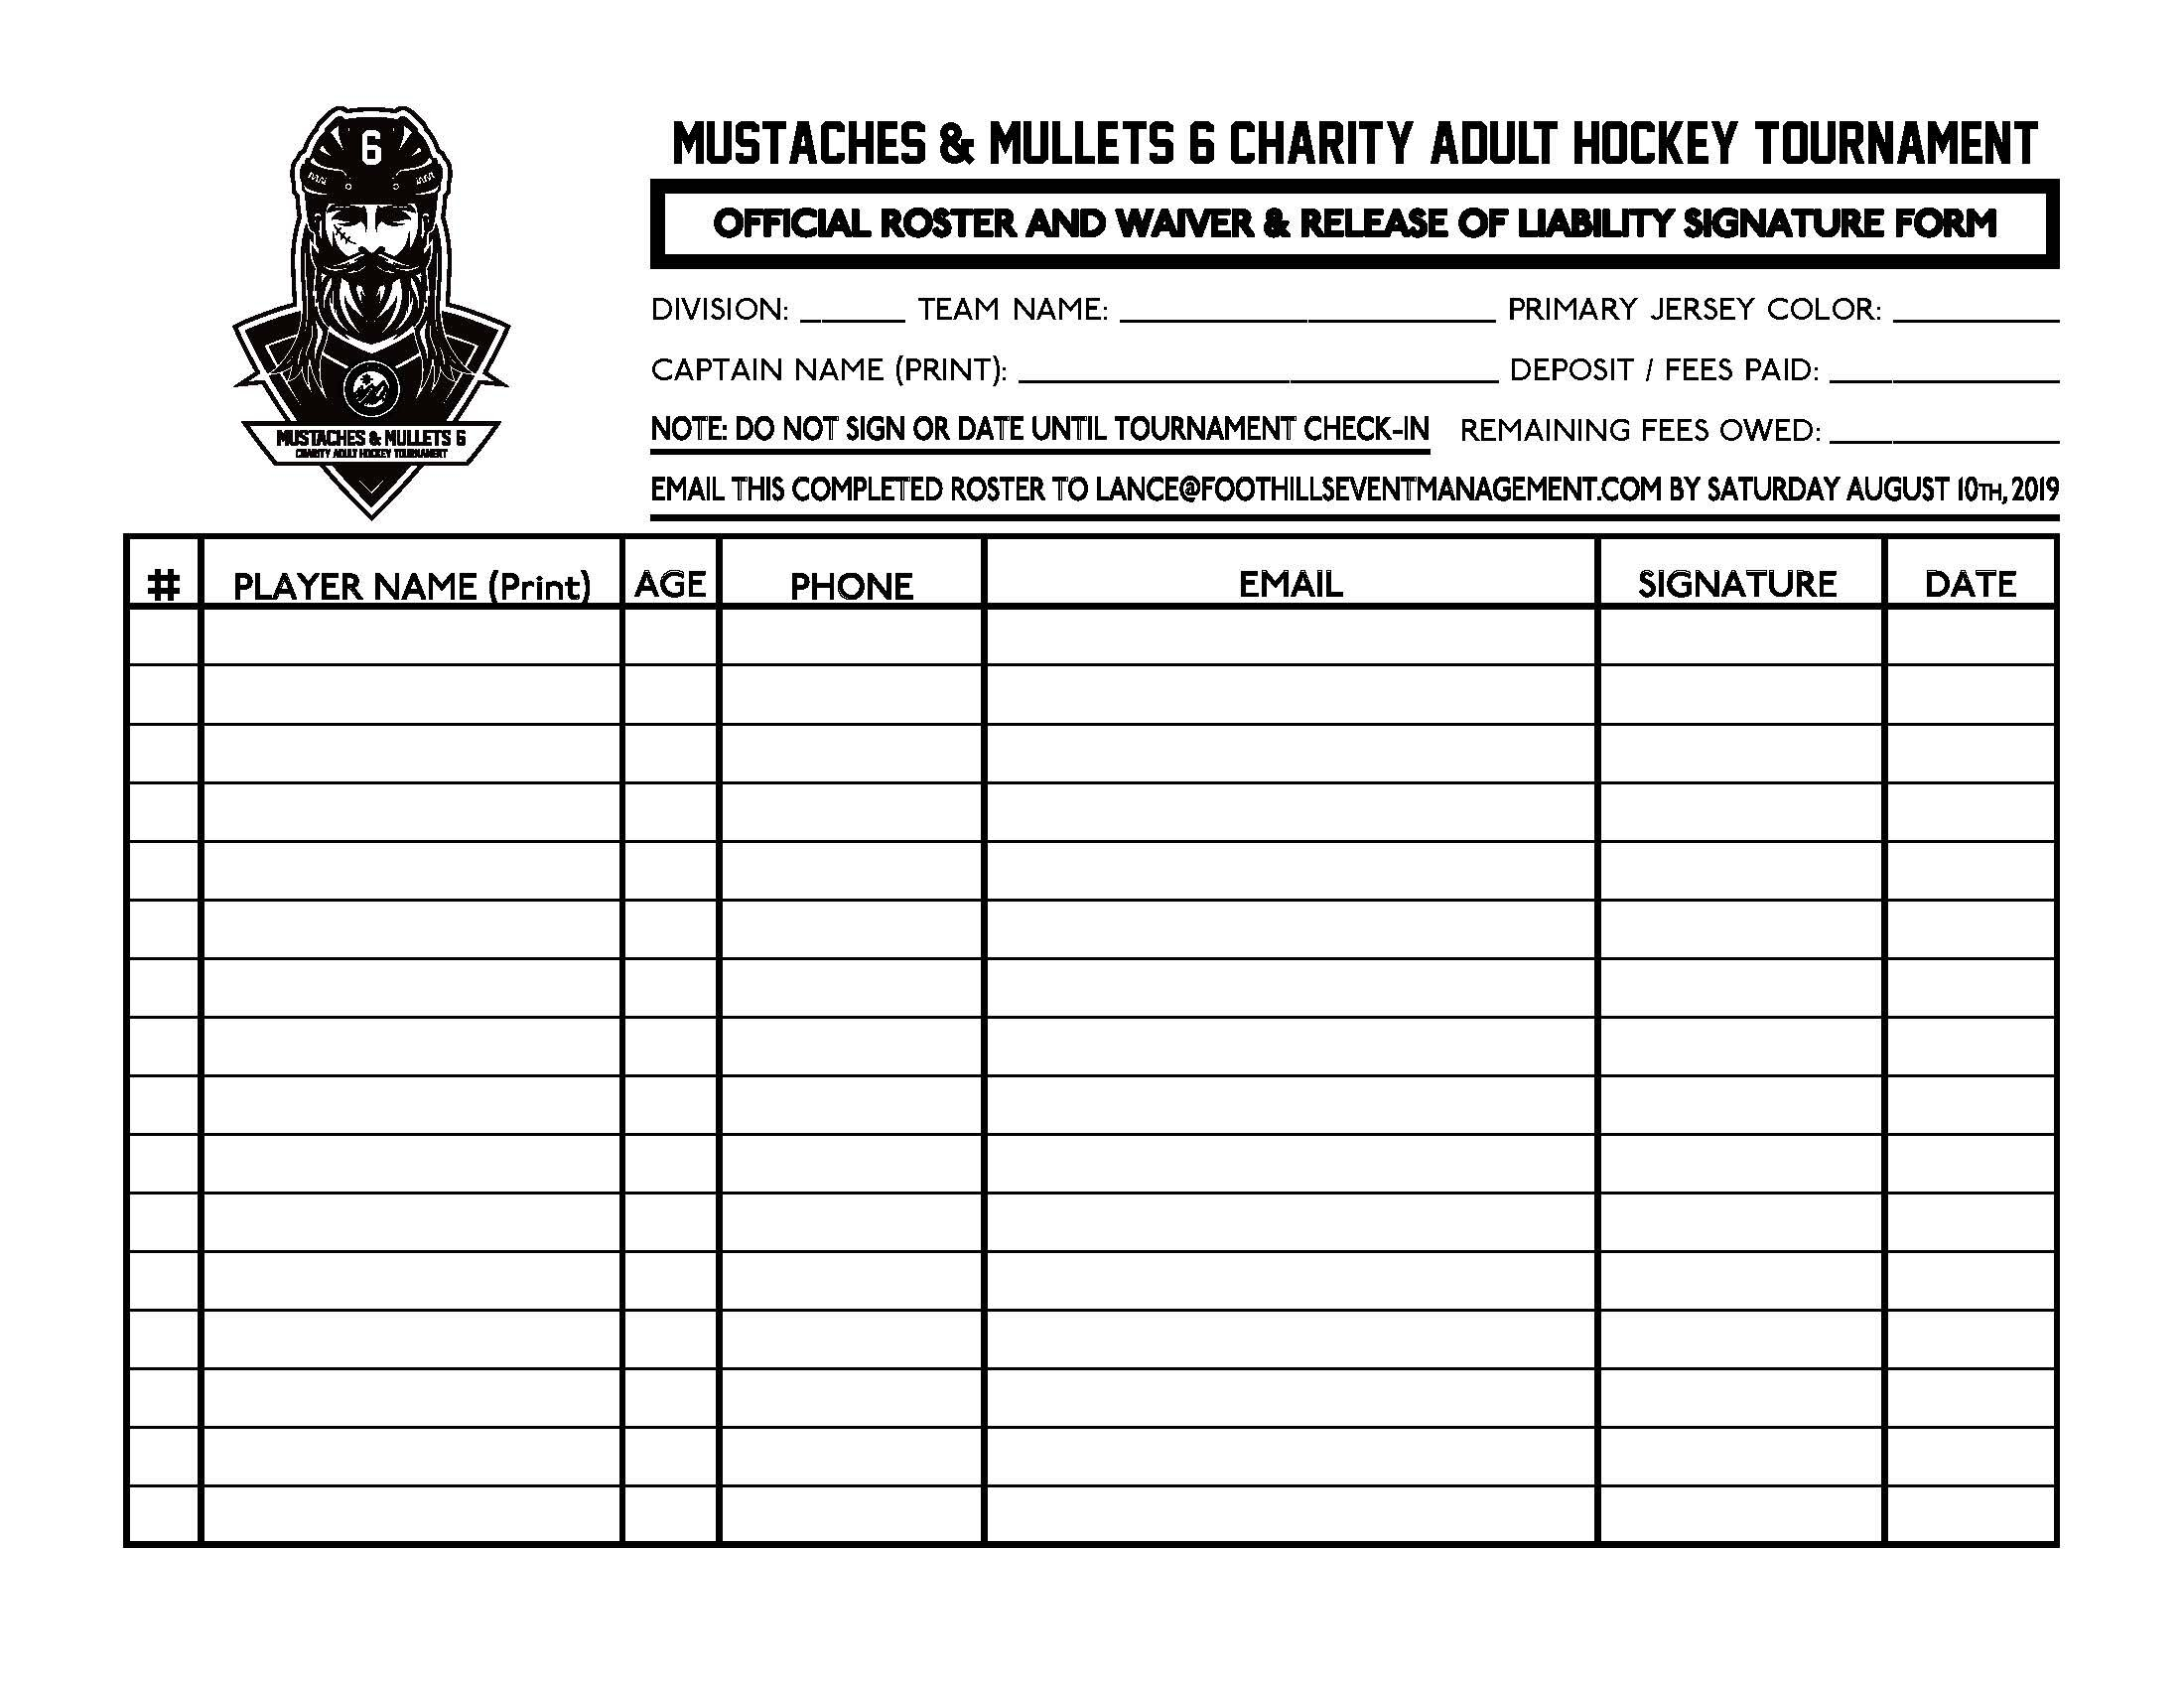 Mustaches & Mullets 6 Roster Form